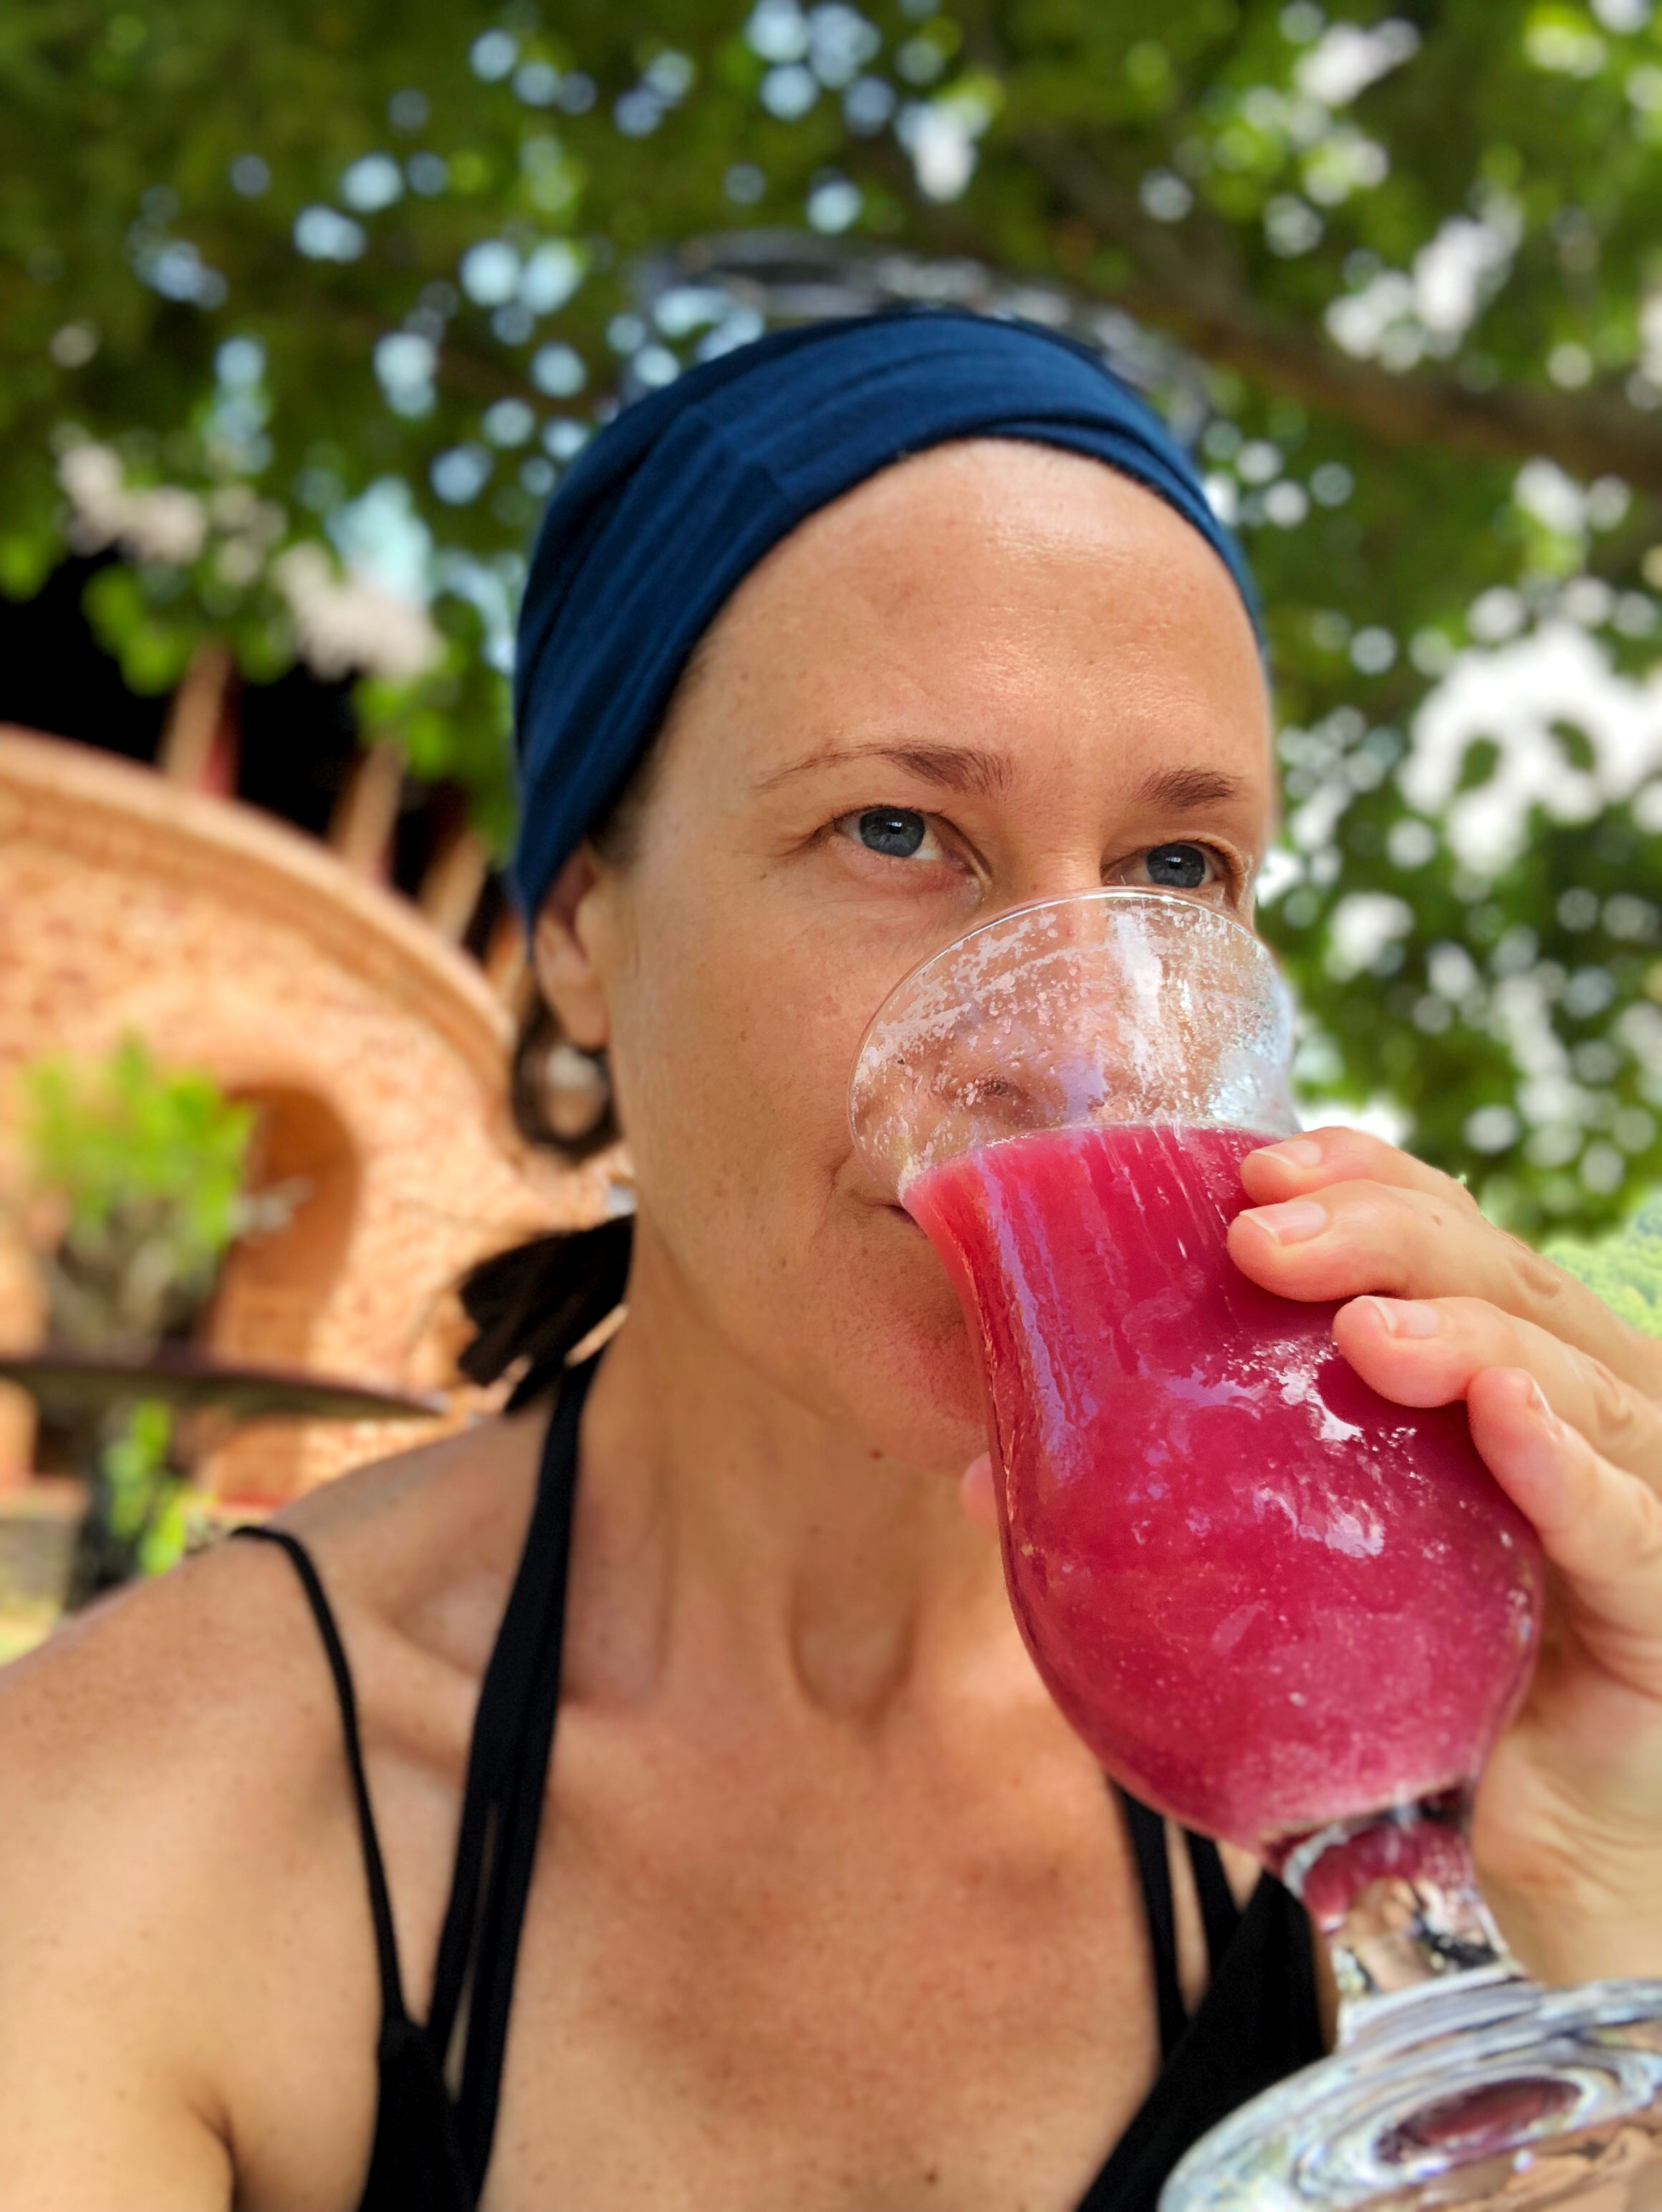 Juices for a beautiful skin